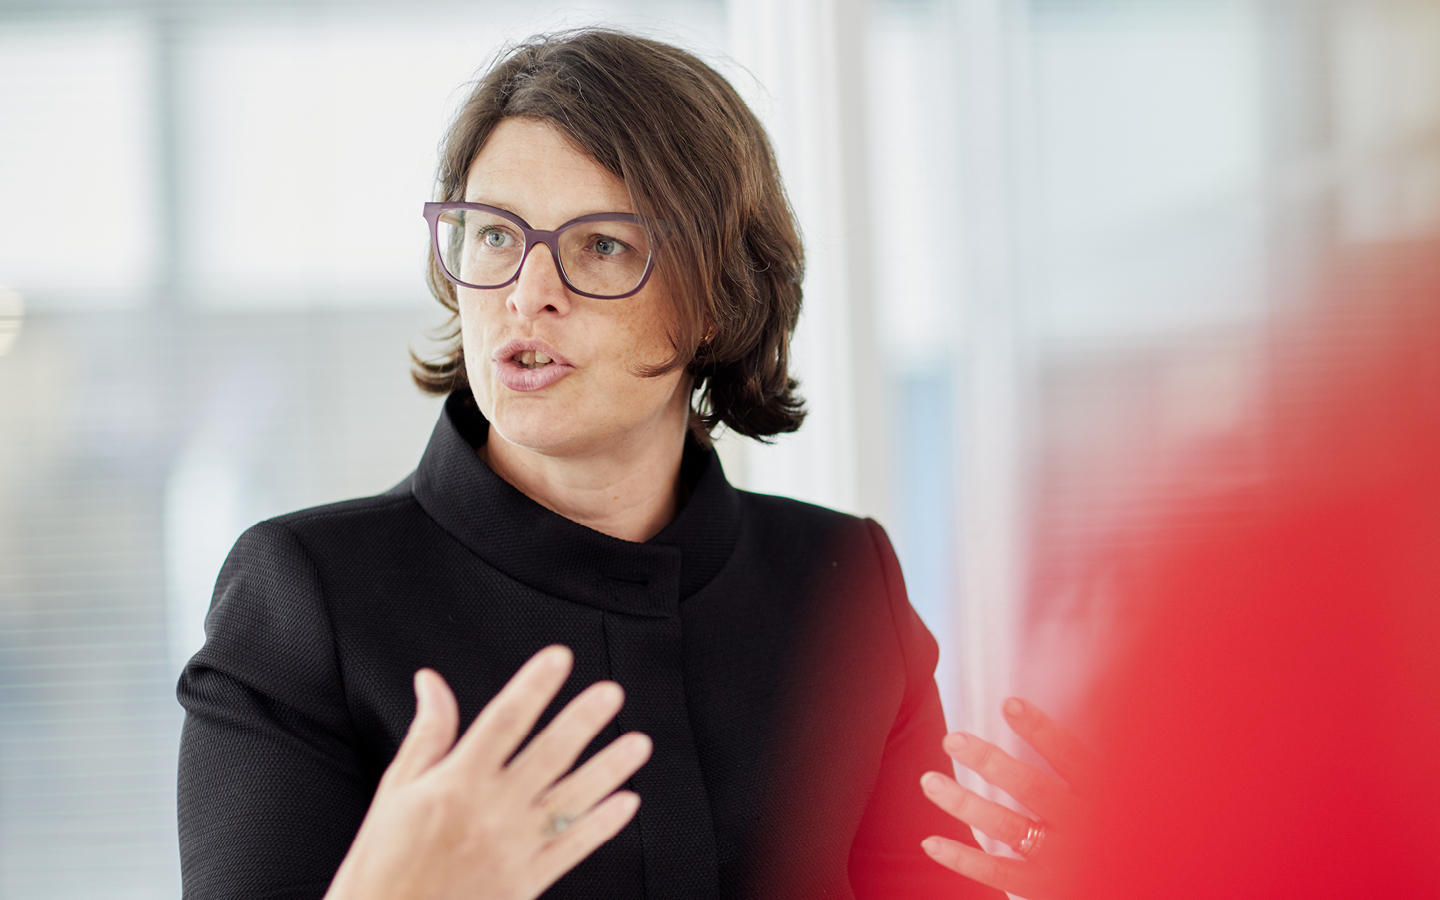 Capital Markets practice image - woman talking